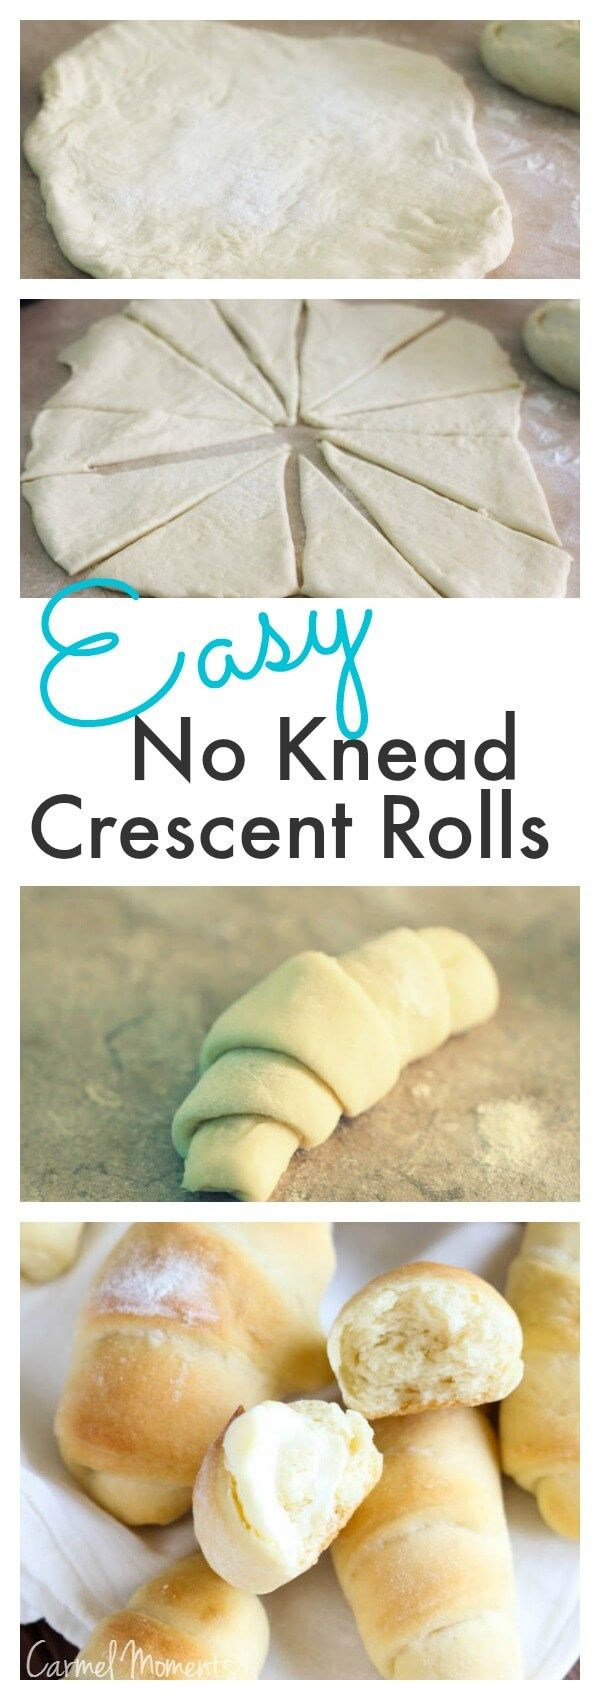 Easy No Knead Crescent Rolls - This really is easy, but don't believe the time estimate. These took me about 1&1/2 to 2 hours to make.